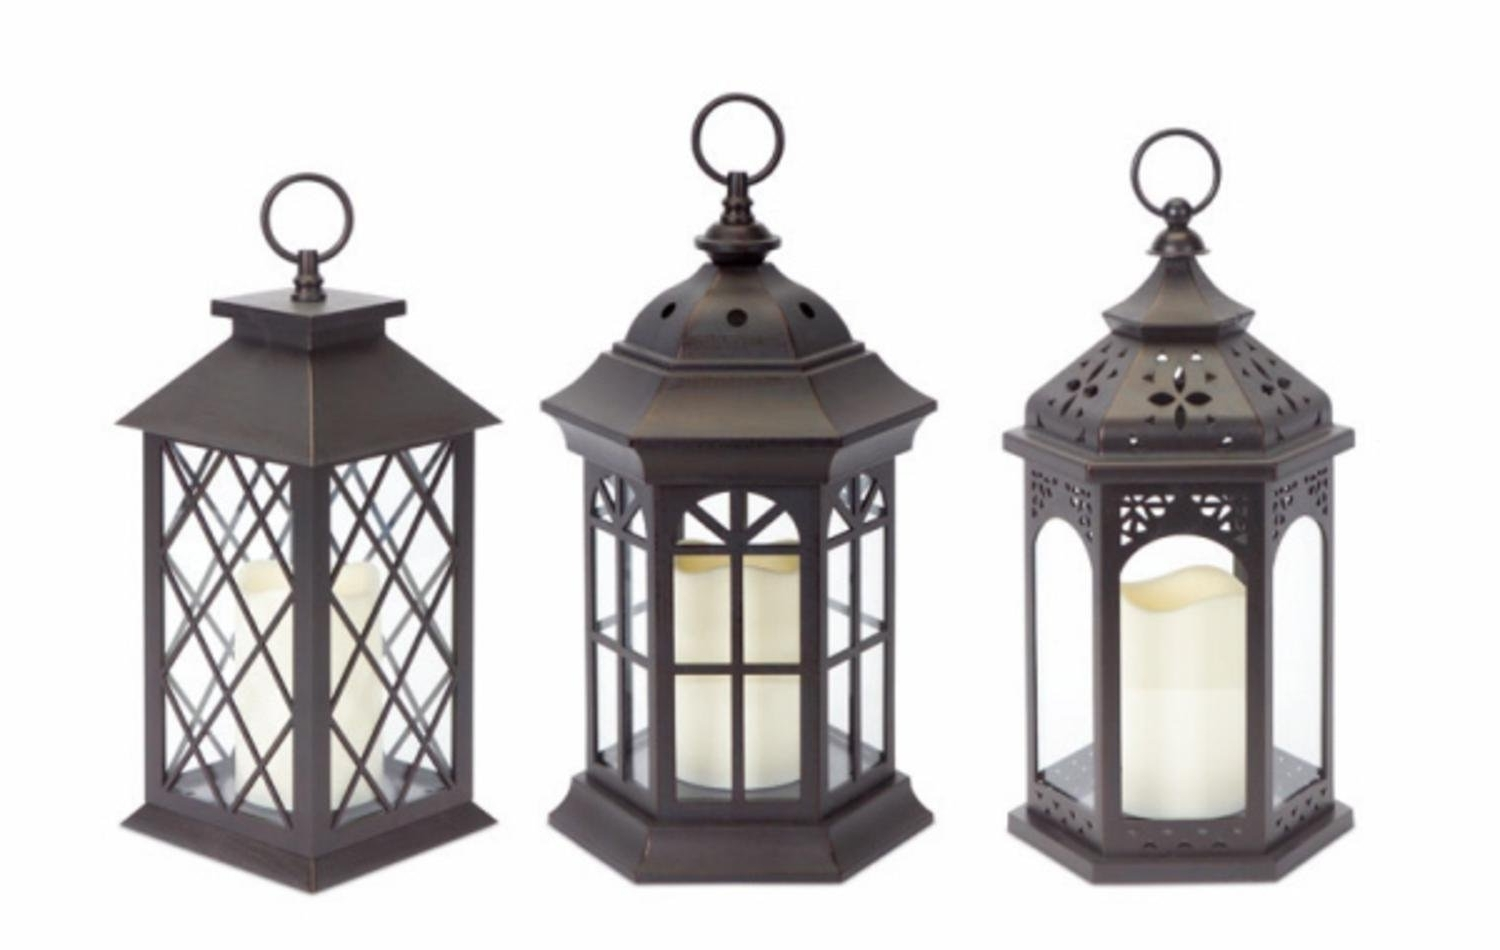 Cheap Outdoor Lanterns Candle, Find Outdoor Lanterns Candle Deals On With Well Known Cheap Outdoor Lanterns (View 6 of 20)